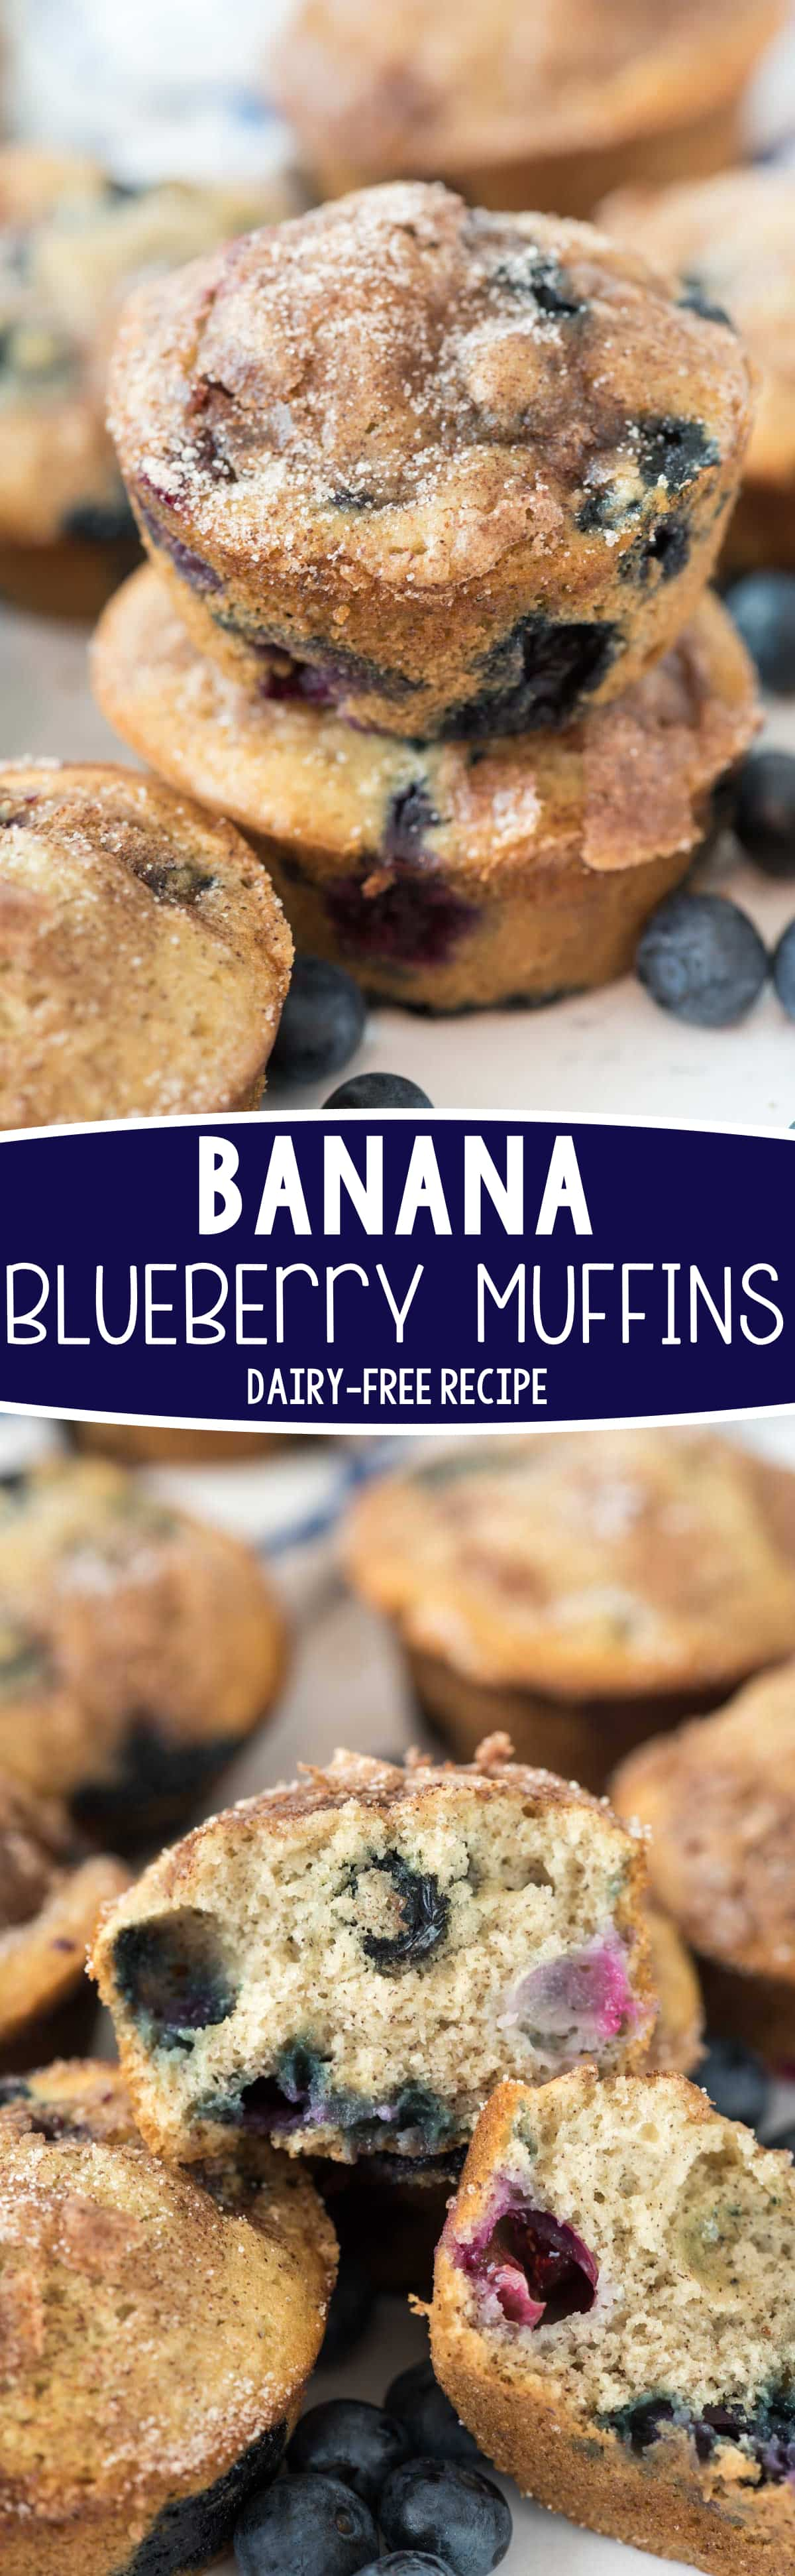 Banana Blueberry Muffins - Crazy for Crust